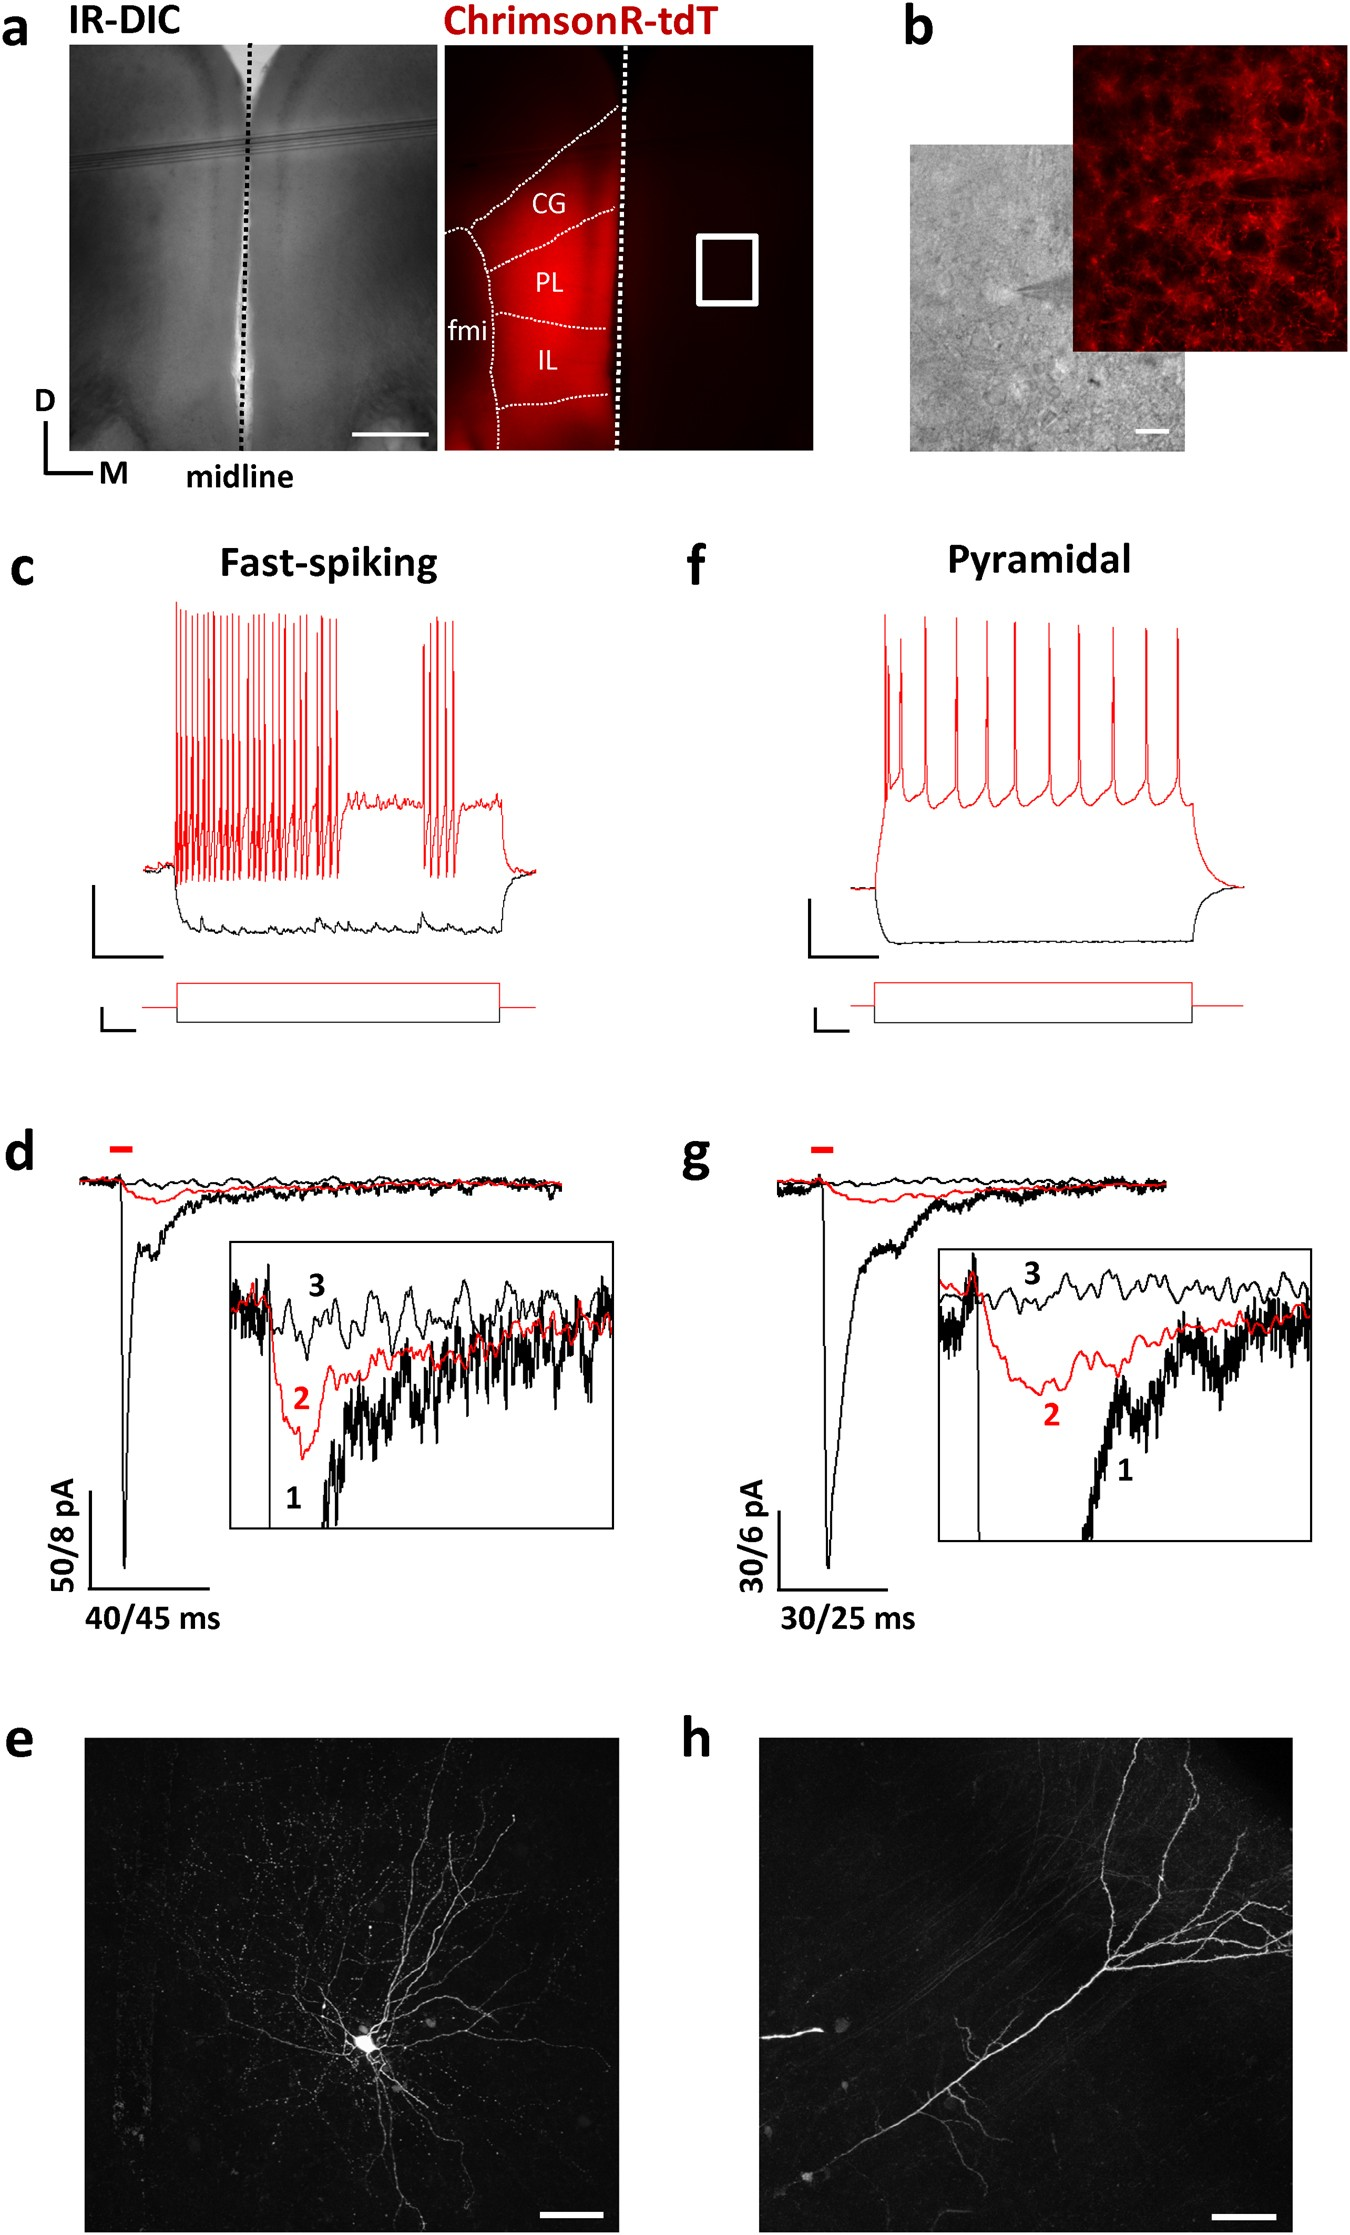 Multiple Long Range Inputs Evoke Nmda Currents In Prefrontal Cortex This Circuit Produces A Voltage Proportional To Current And Isolates Fast Spiking Interneurons Neuropsychopharmacology